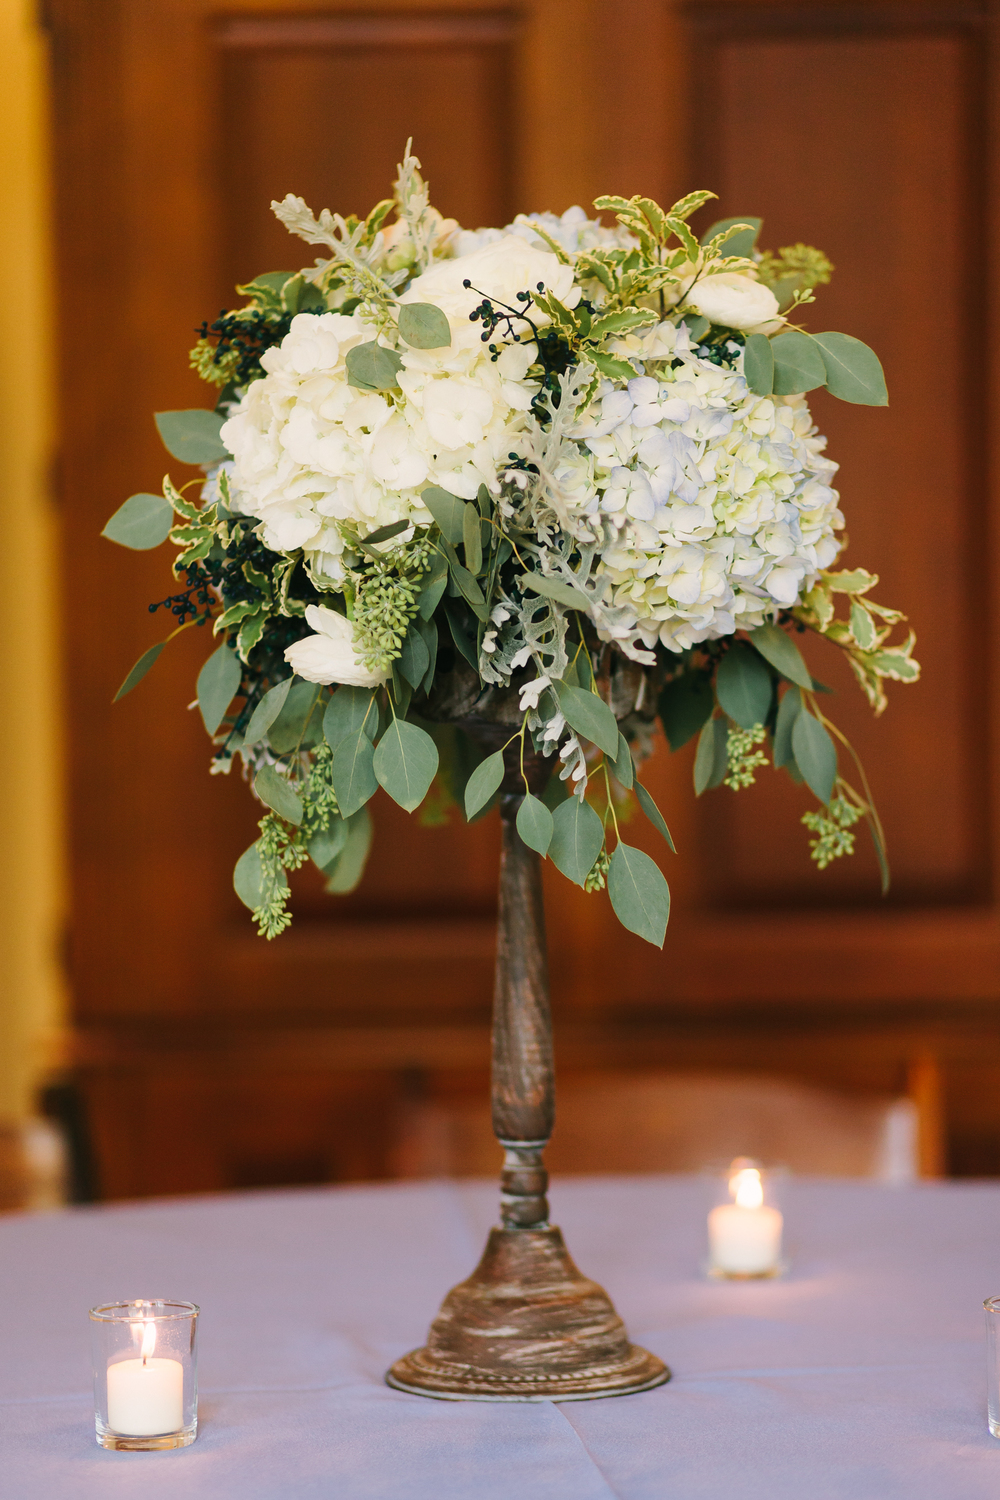 Elevated floral arrangement with blue and white hydrangeas, privet berries, and lush greenery